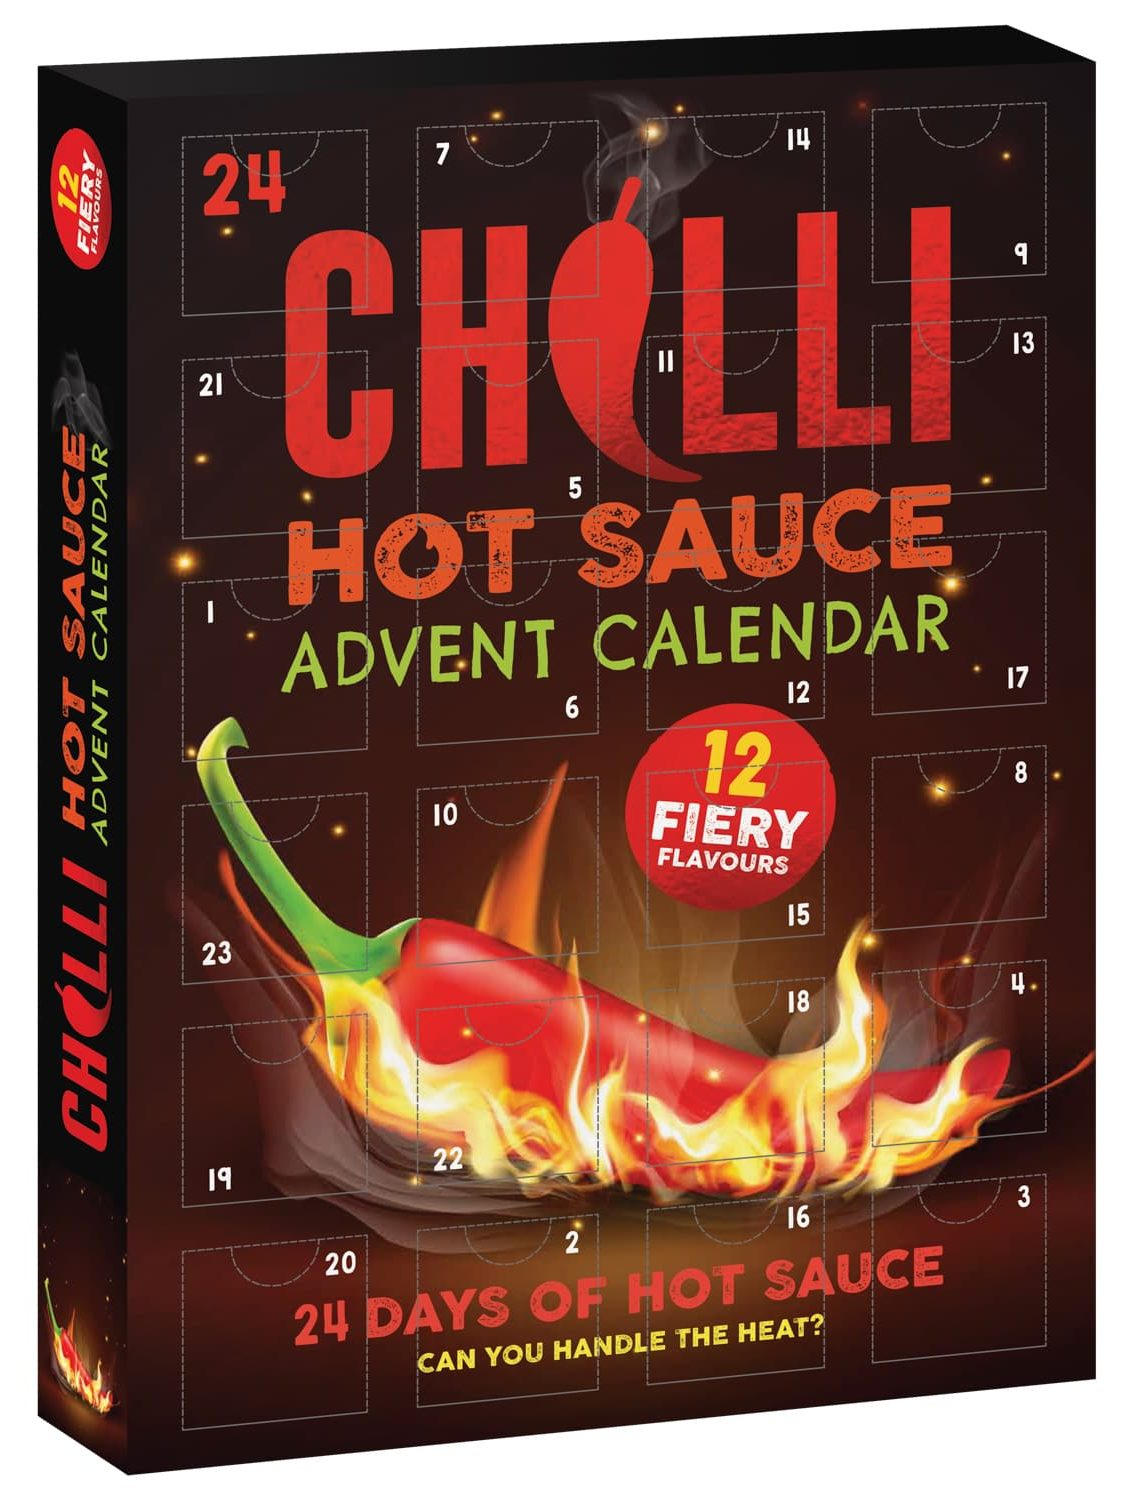 You can get a hot sauce advent calendar with 12 'fiery flavours' at B&M, The Manc